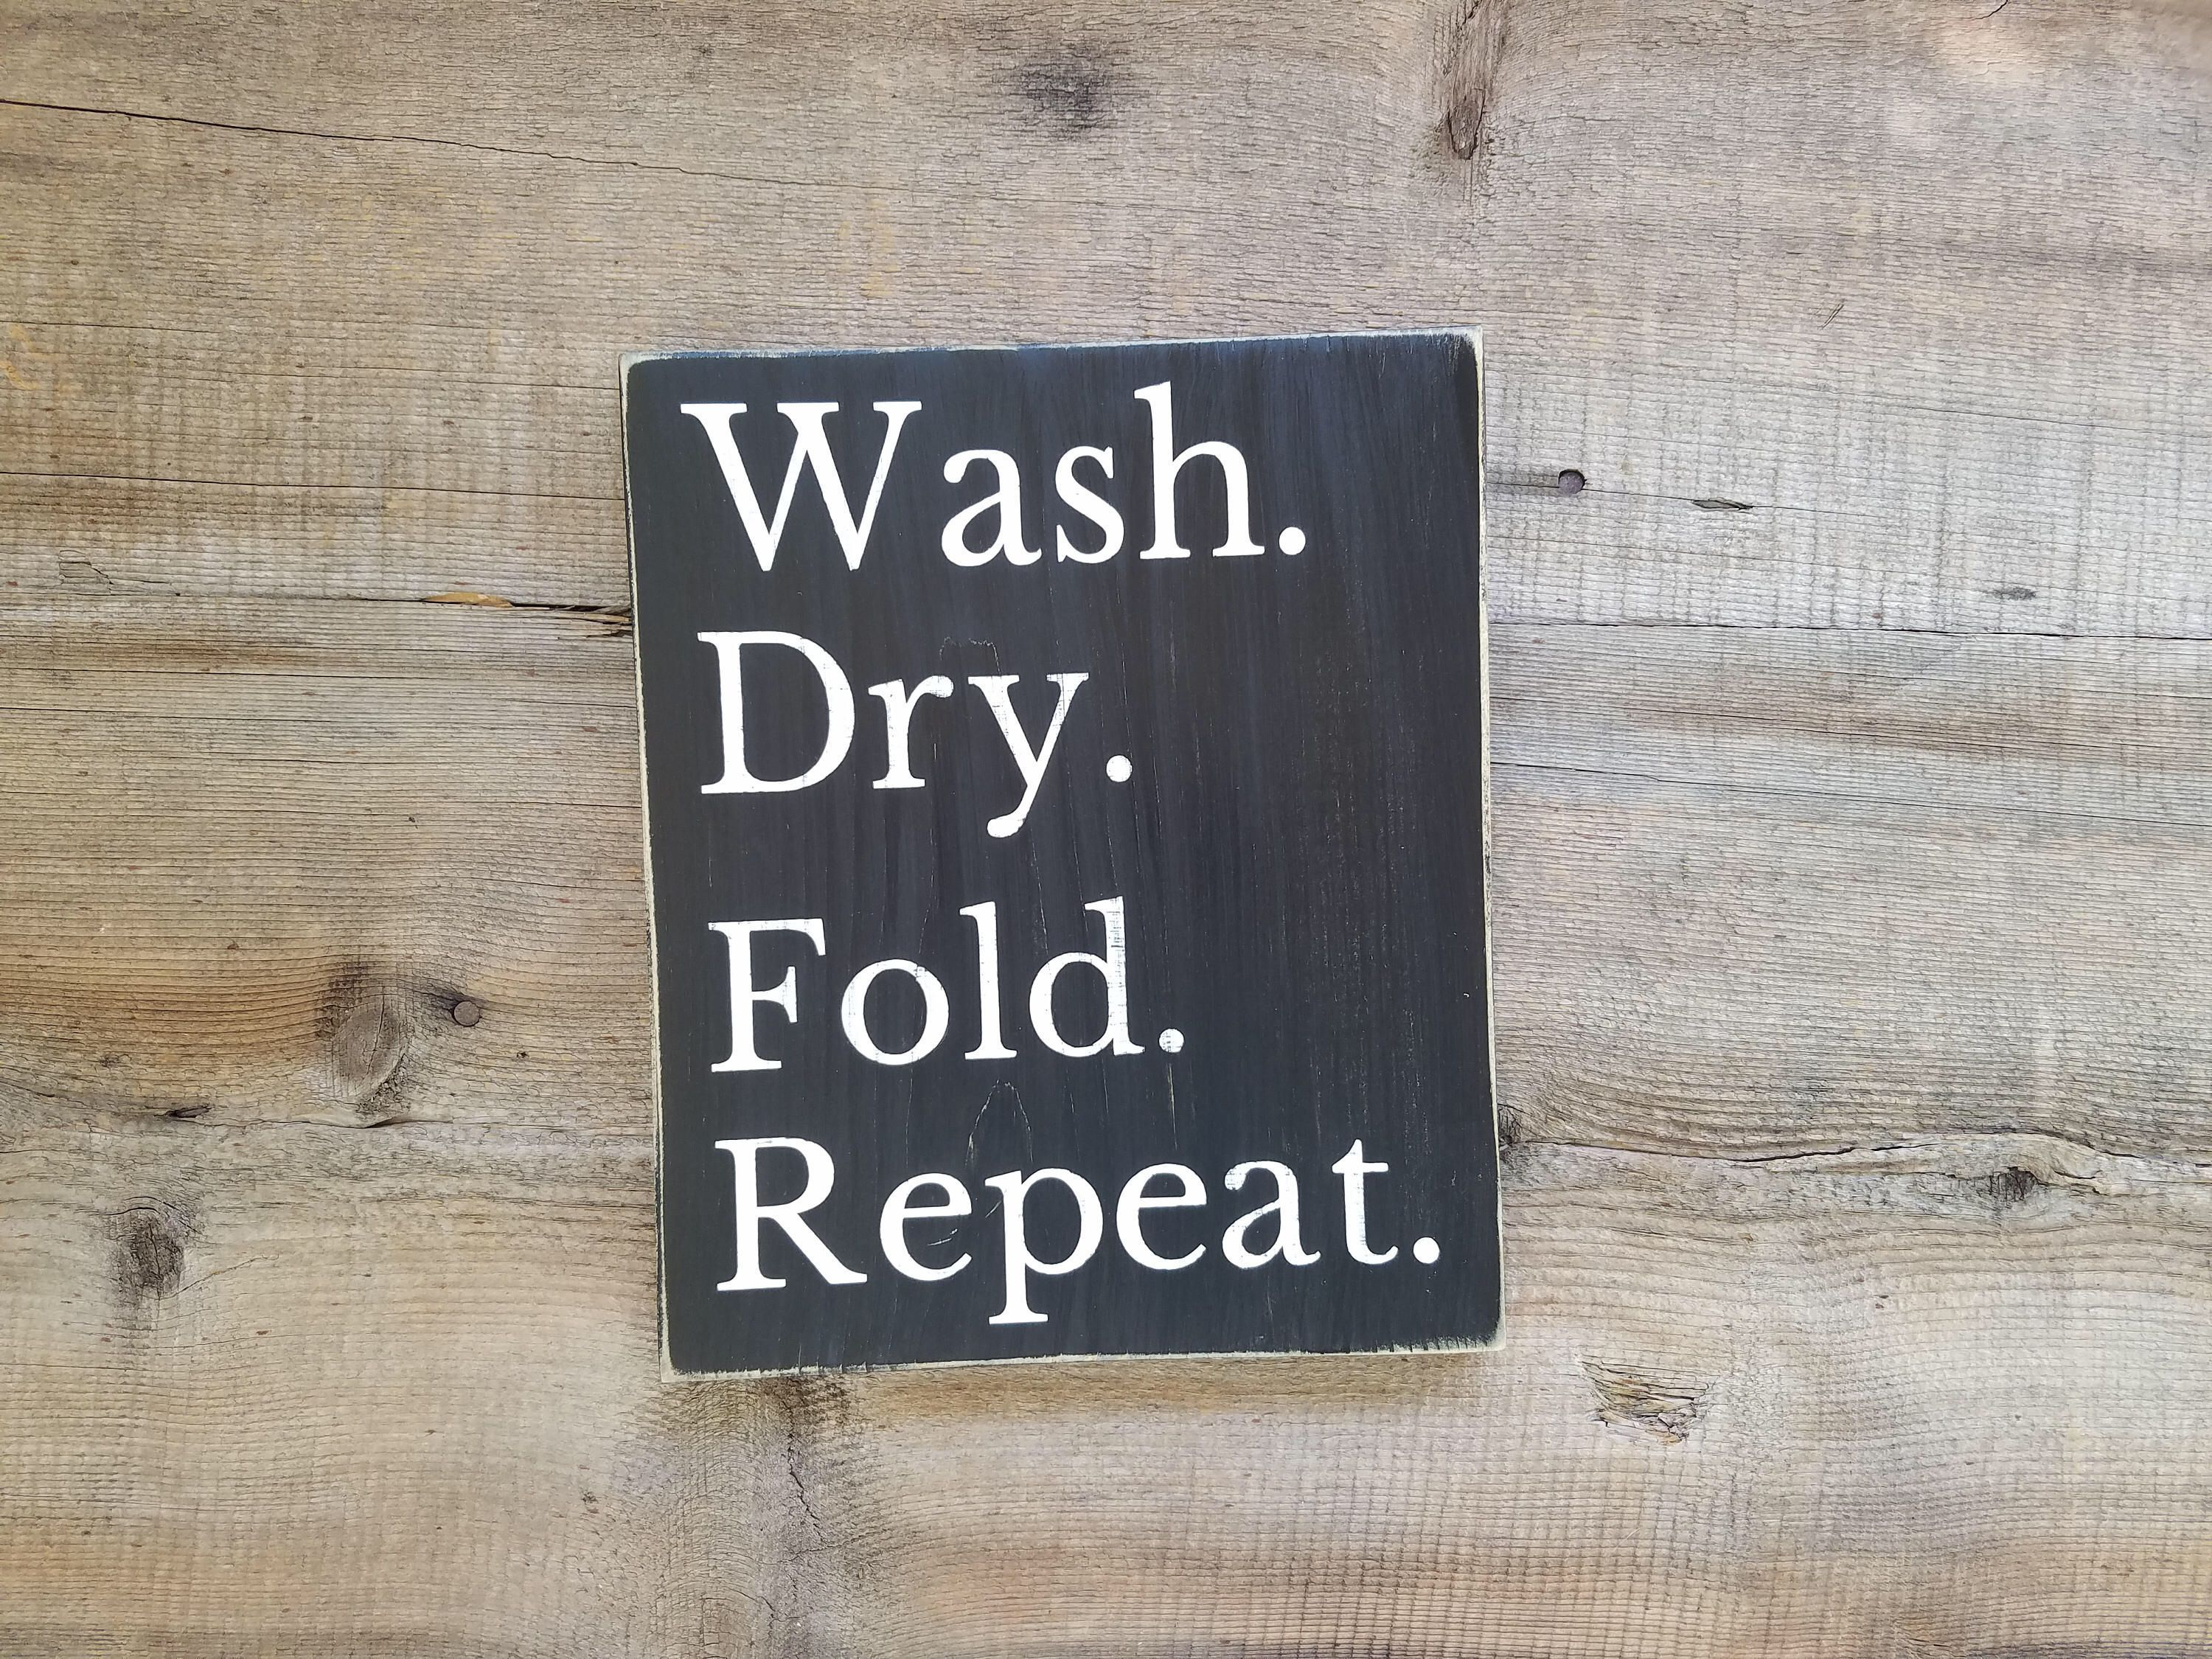 Wash Dry Fold Repeat Laundry Sign. Laundry room sign, laundry, laundry room art, laundry sign, wood laundry sign, laundry decoration #laundrysigns * Shipping Note - First Class Mail and Parcel Select services DO NOT include insurance. If you want your package insured please select a Priority Mail option or message me about adding insurance to your order. I am not responsible for non-insured items and will not issue refunds for lost, missing or damaged uninsured packages. Please message me if you #laundrysigns